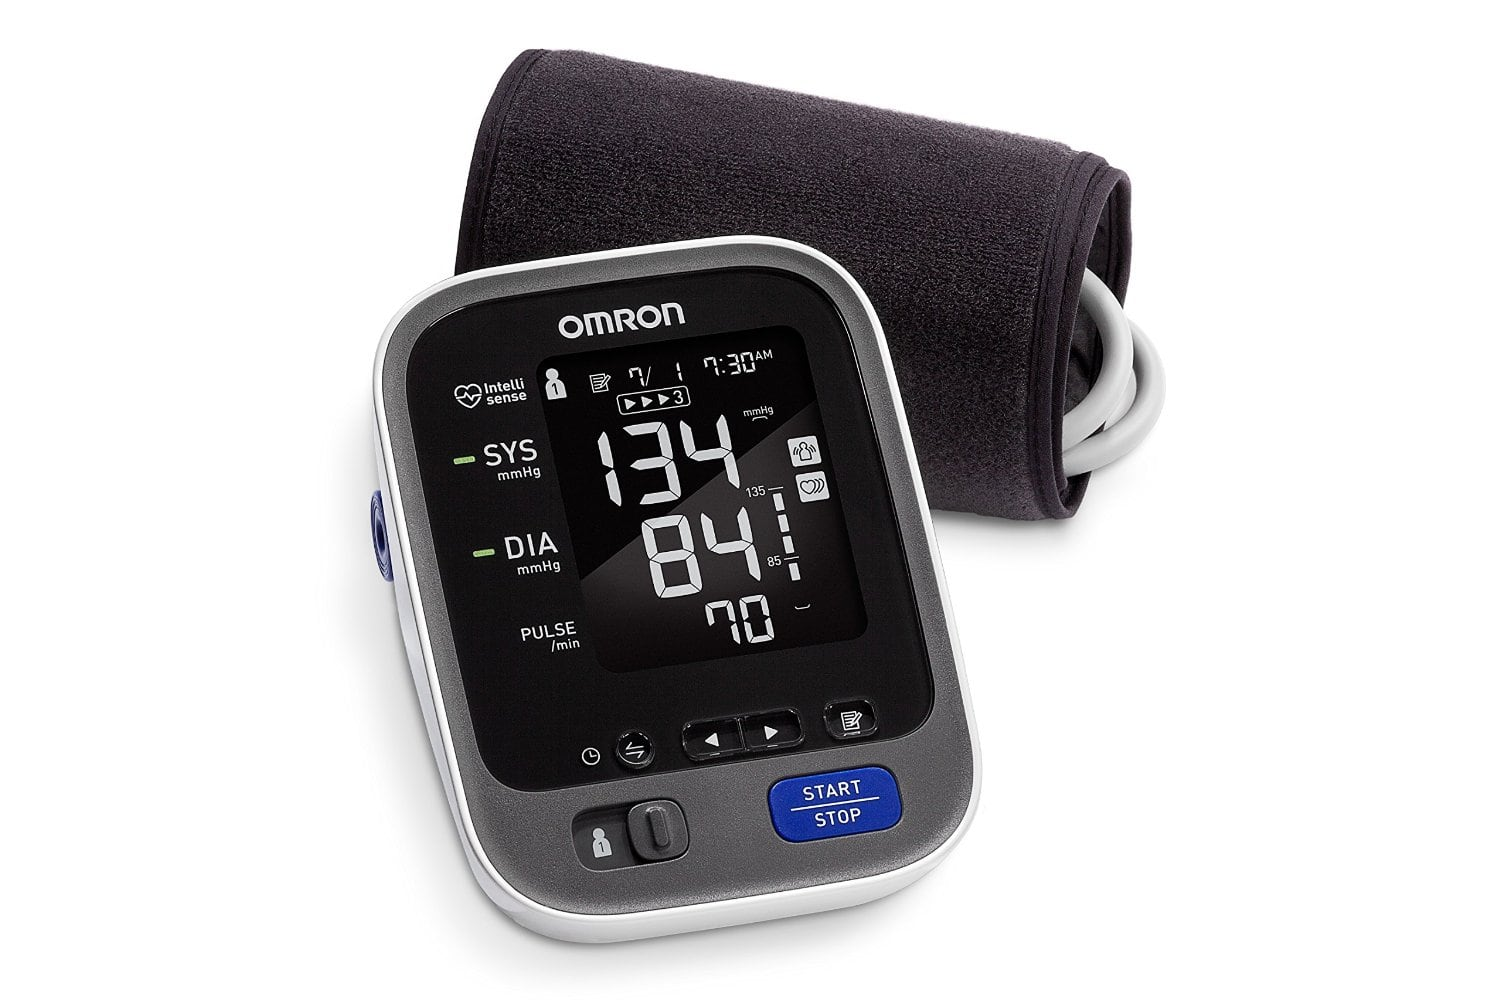 Omron 10 Series Wireless/Bluetooth Upper-Arm Blood Pressure Monitor $47.50 via Amazon